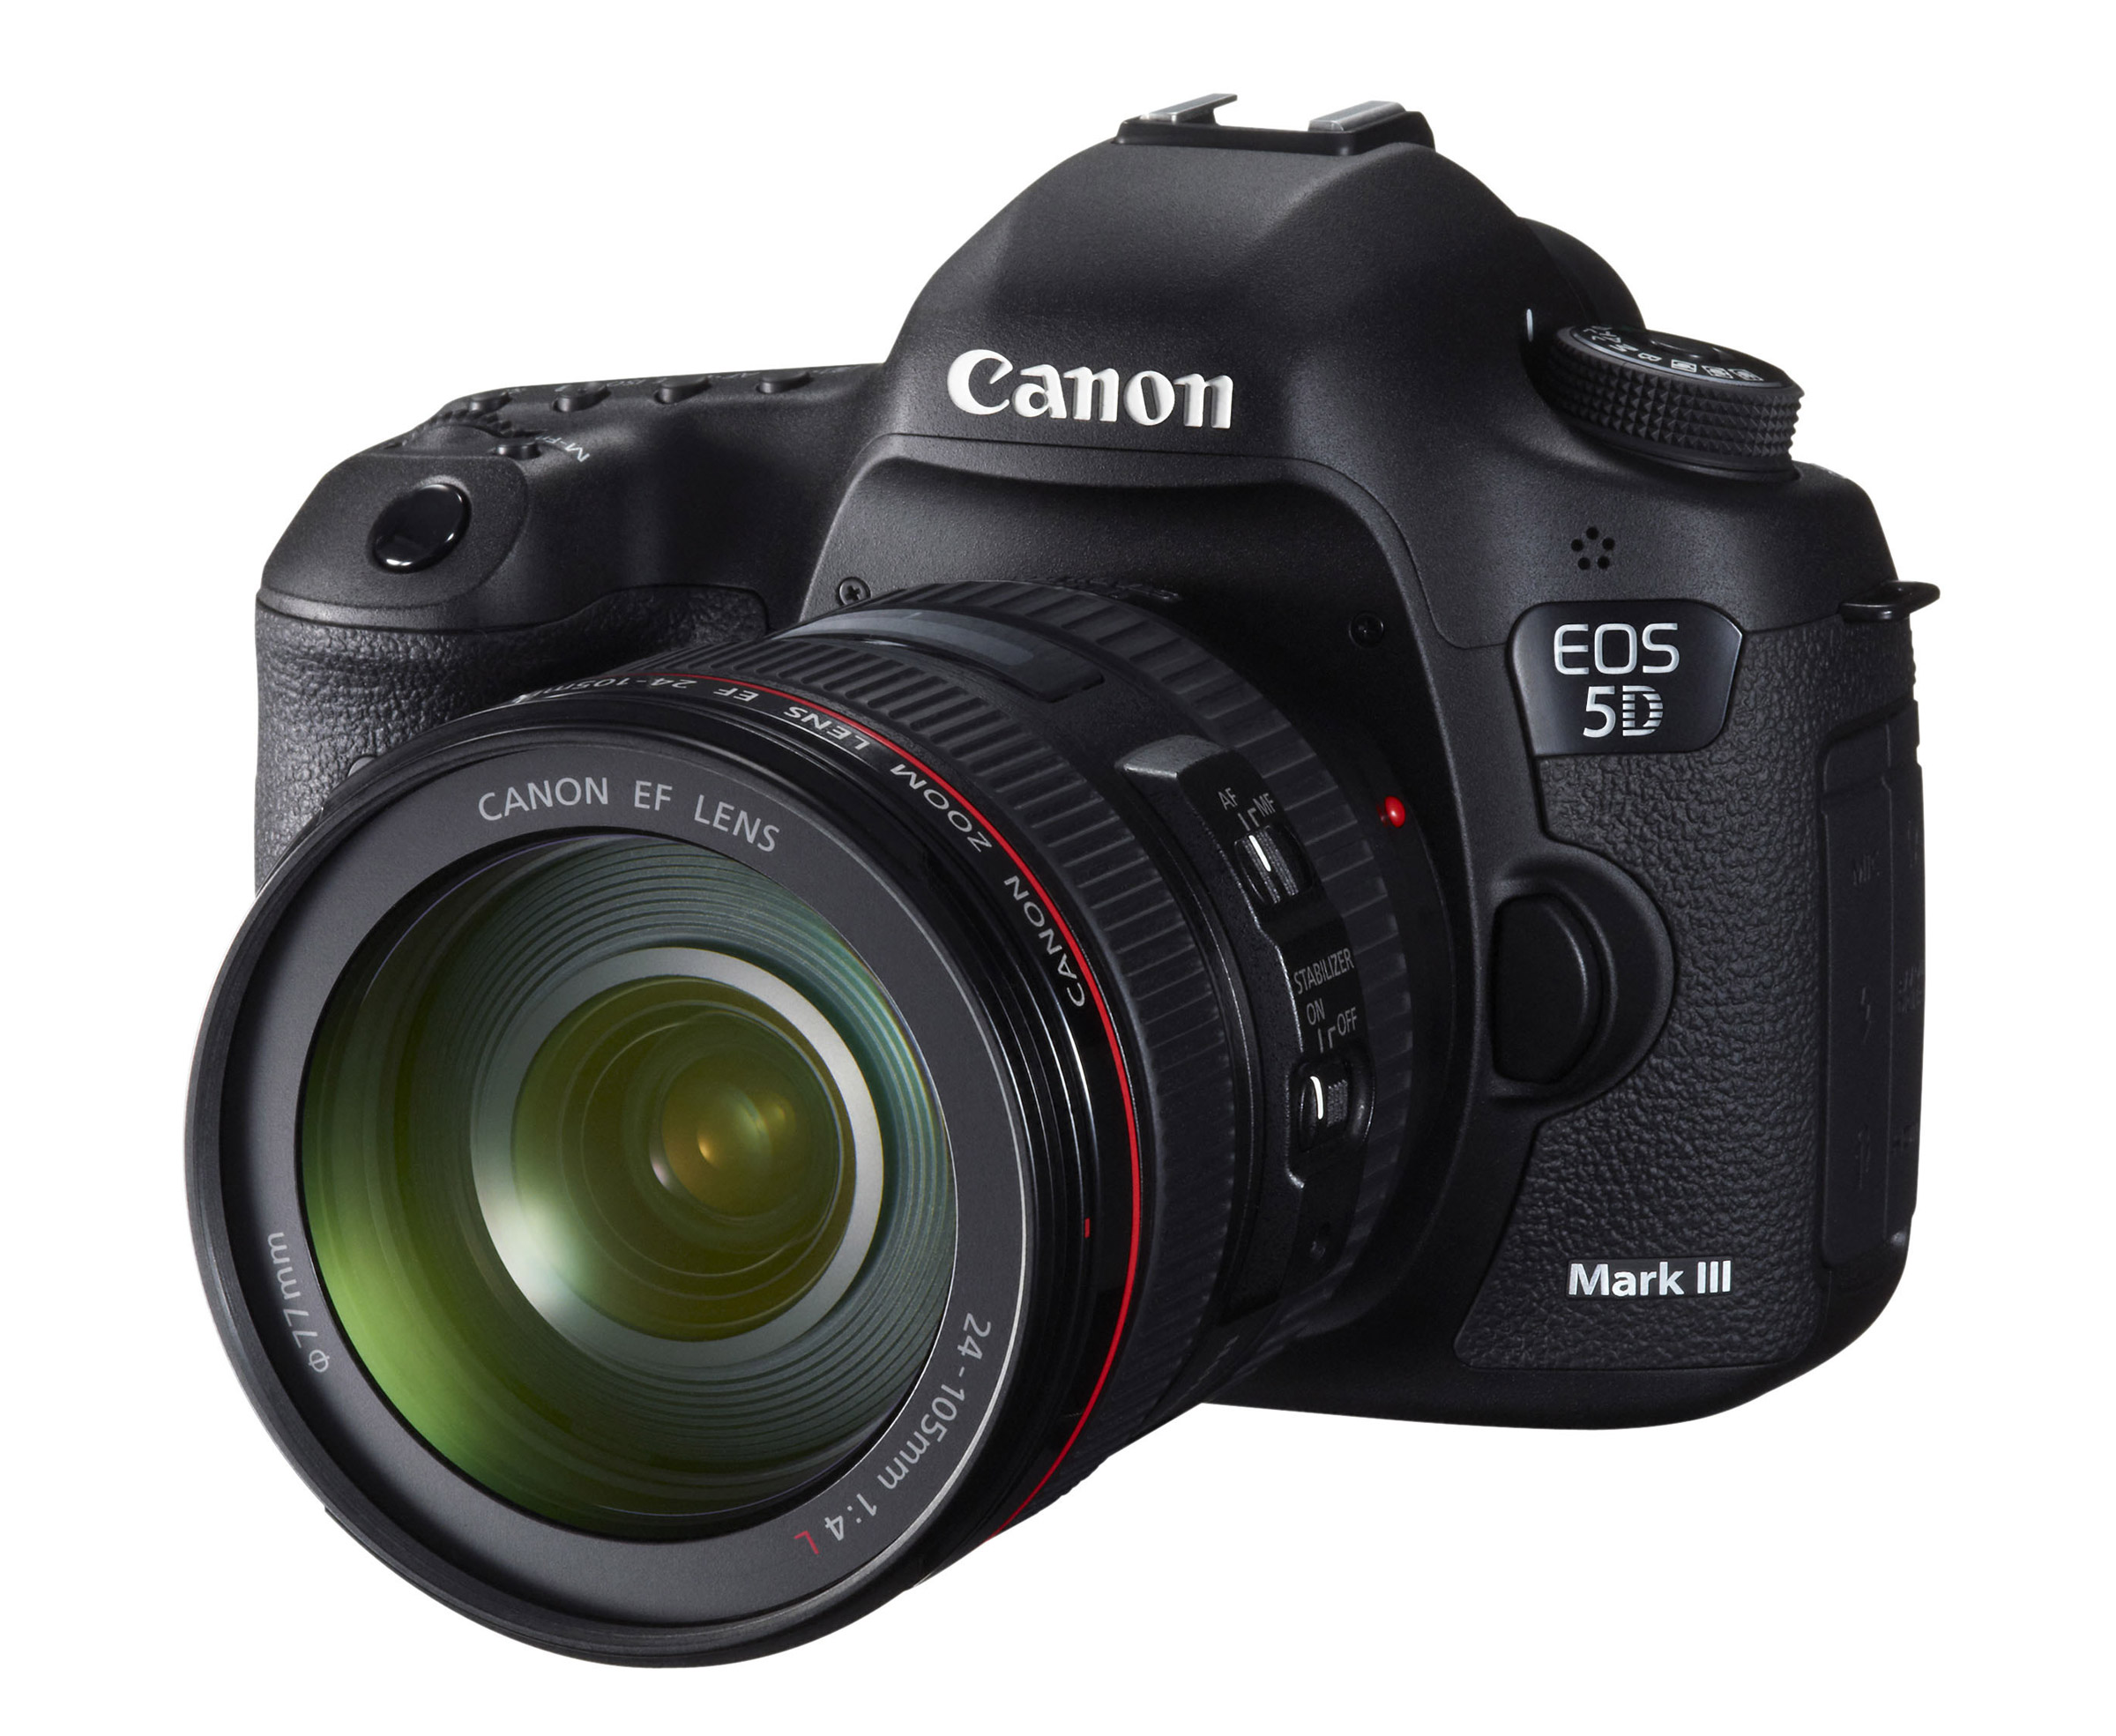 canon 5d mark iii specifications and opinions juzaphoto. Black Bedroom Furniture Sets. Home Design Ideas